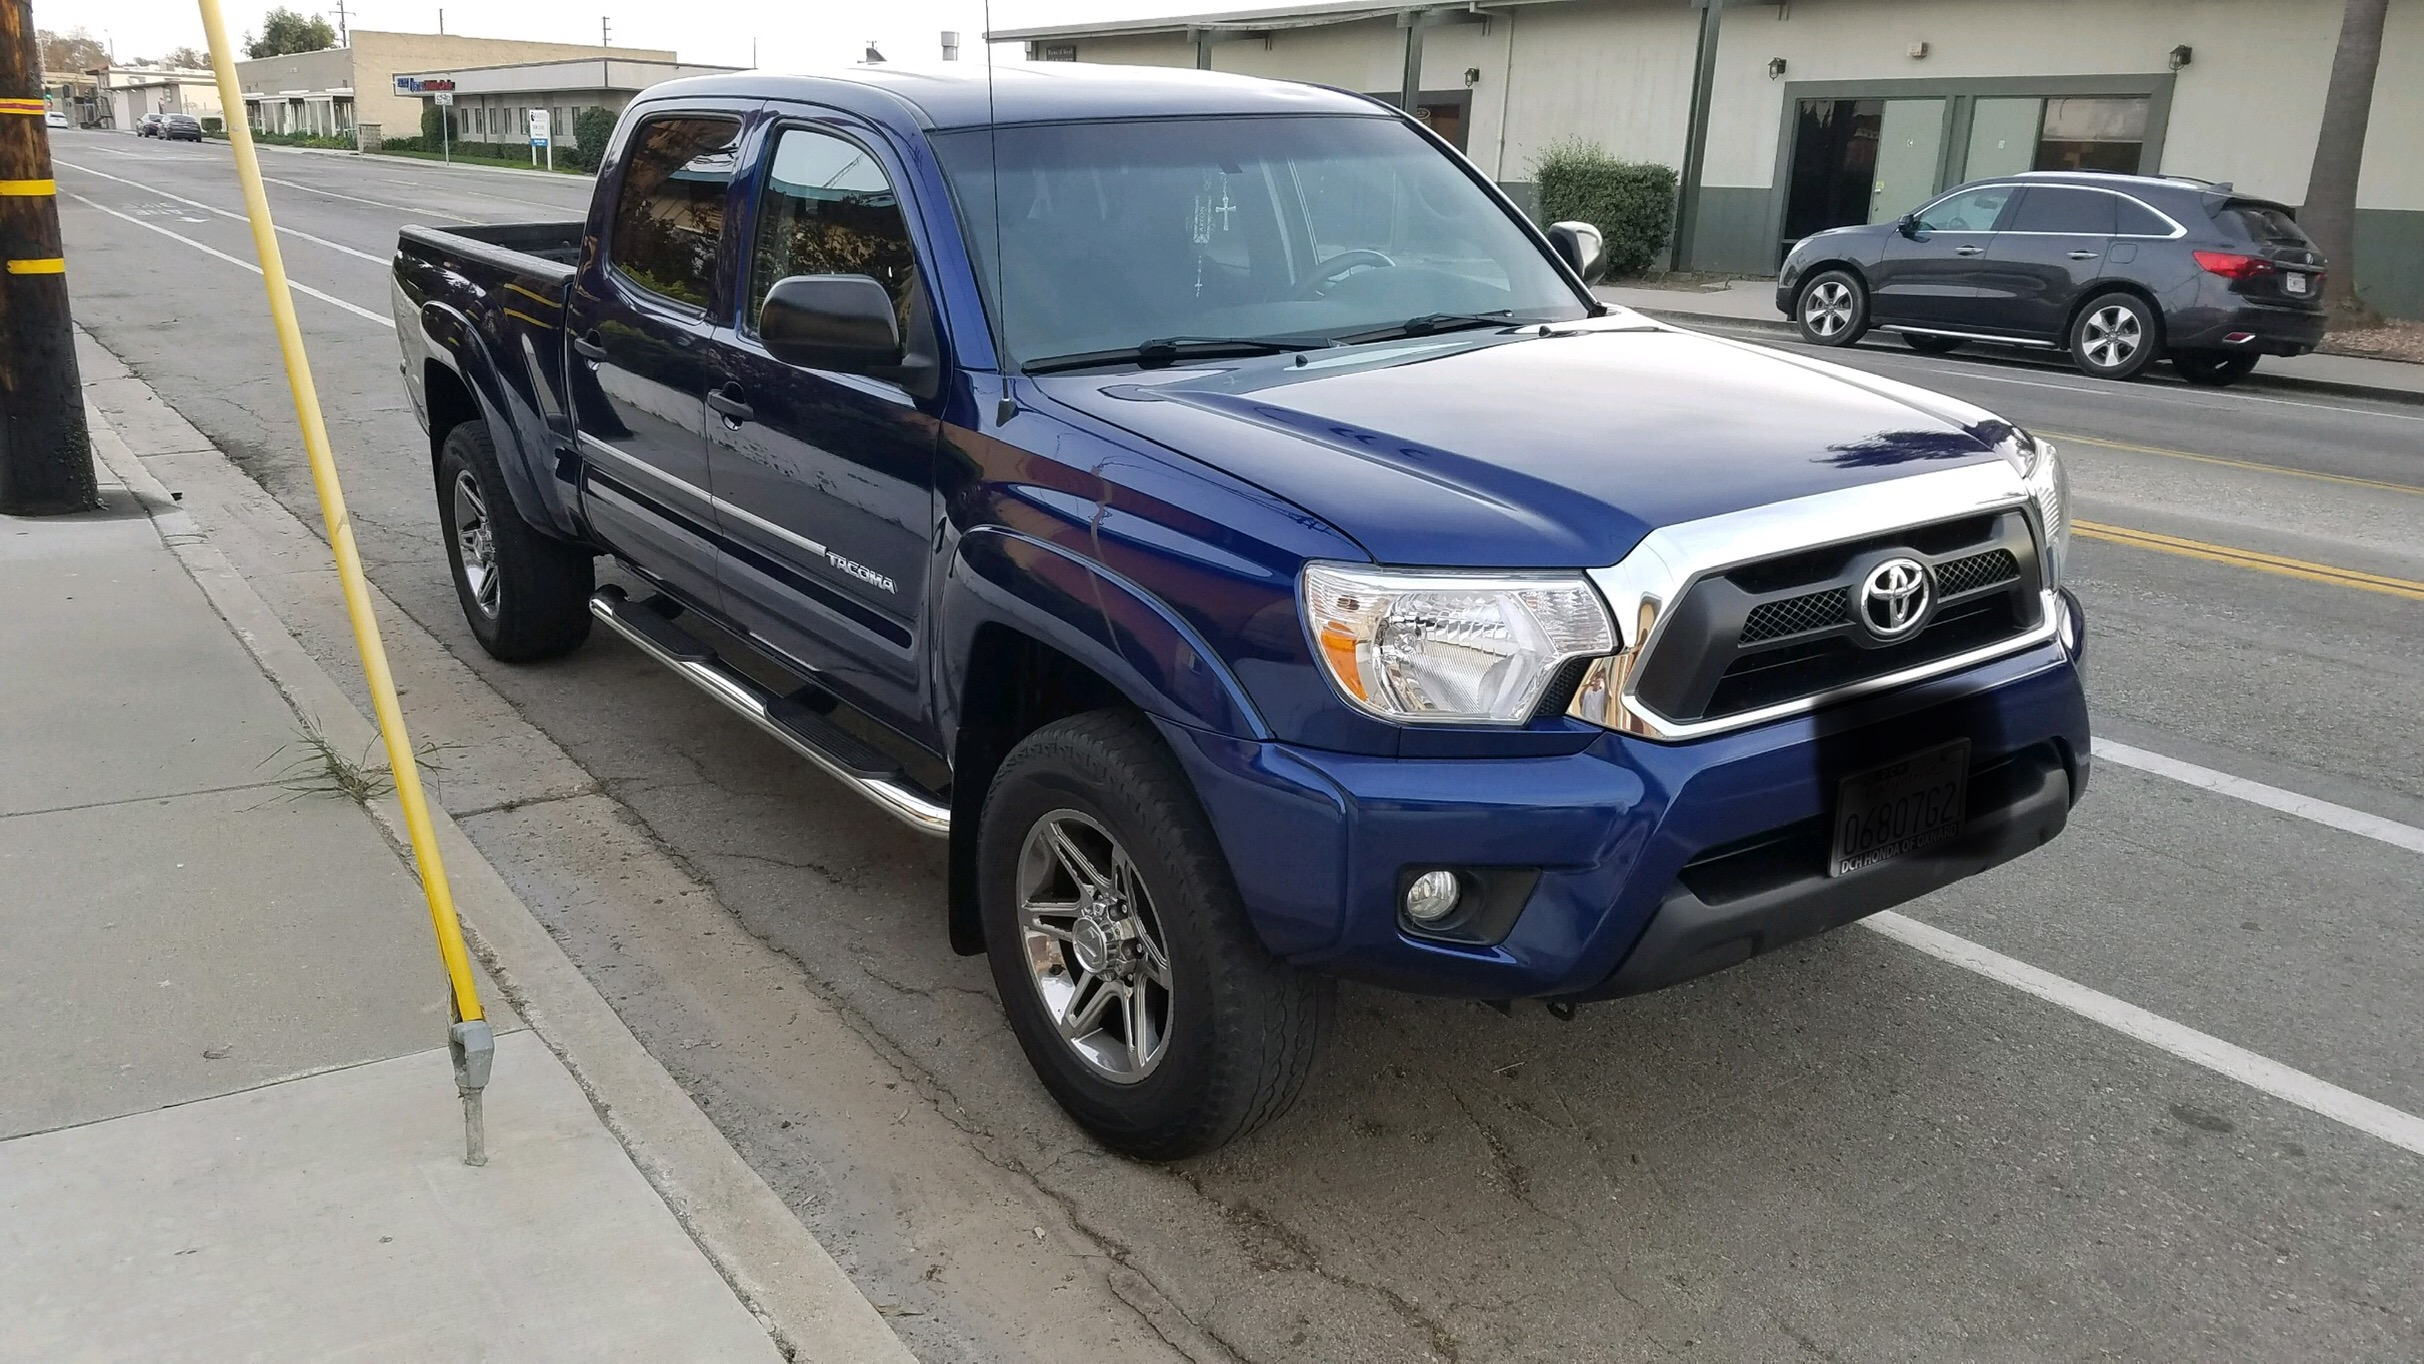 2014 Toyota Tacoma Pre Runner Front End Collision Repair in Ventura